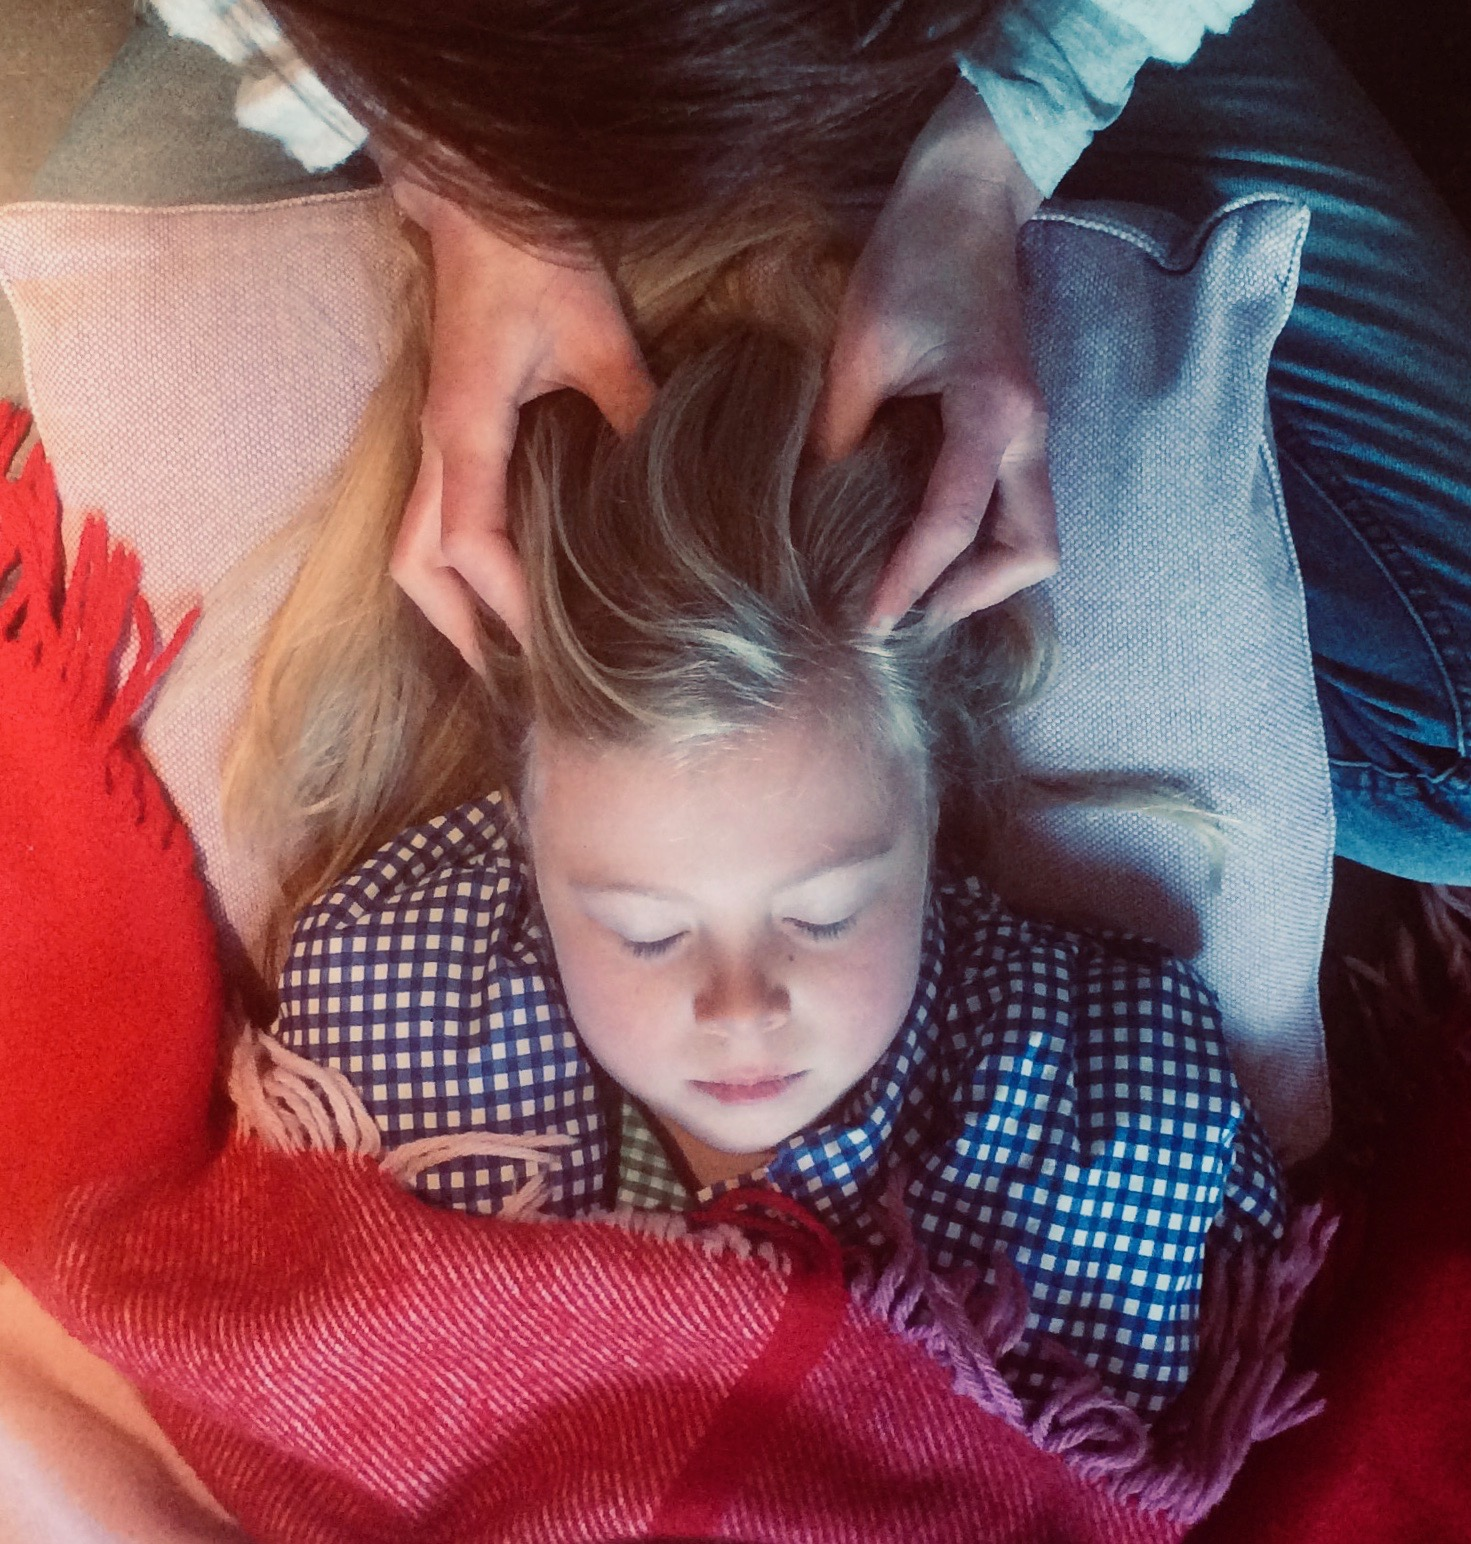 Family head massage workshop - Friday 18th October 20195.30pm to 7pmat Botelet FarmThis candlelit head massage workshop is for parents/carers and their children to learn together how to give a calming head massage. Costs £15 for each parent and child (£7.50 per person). Book your place on this course.